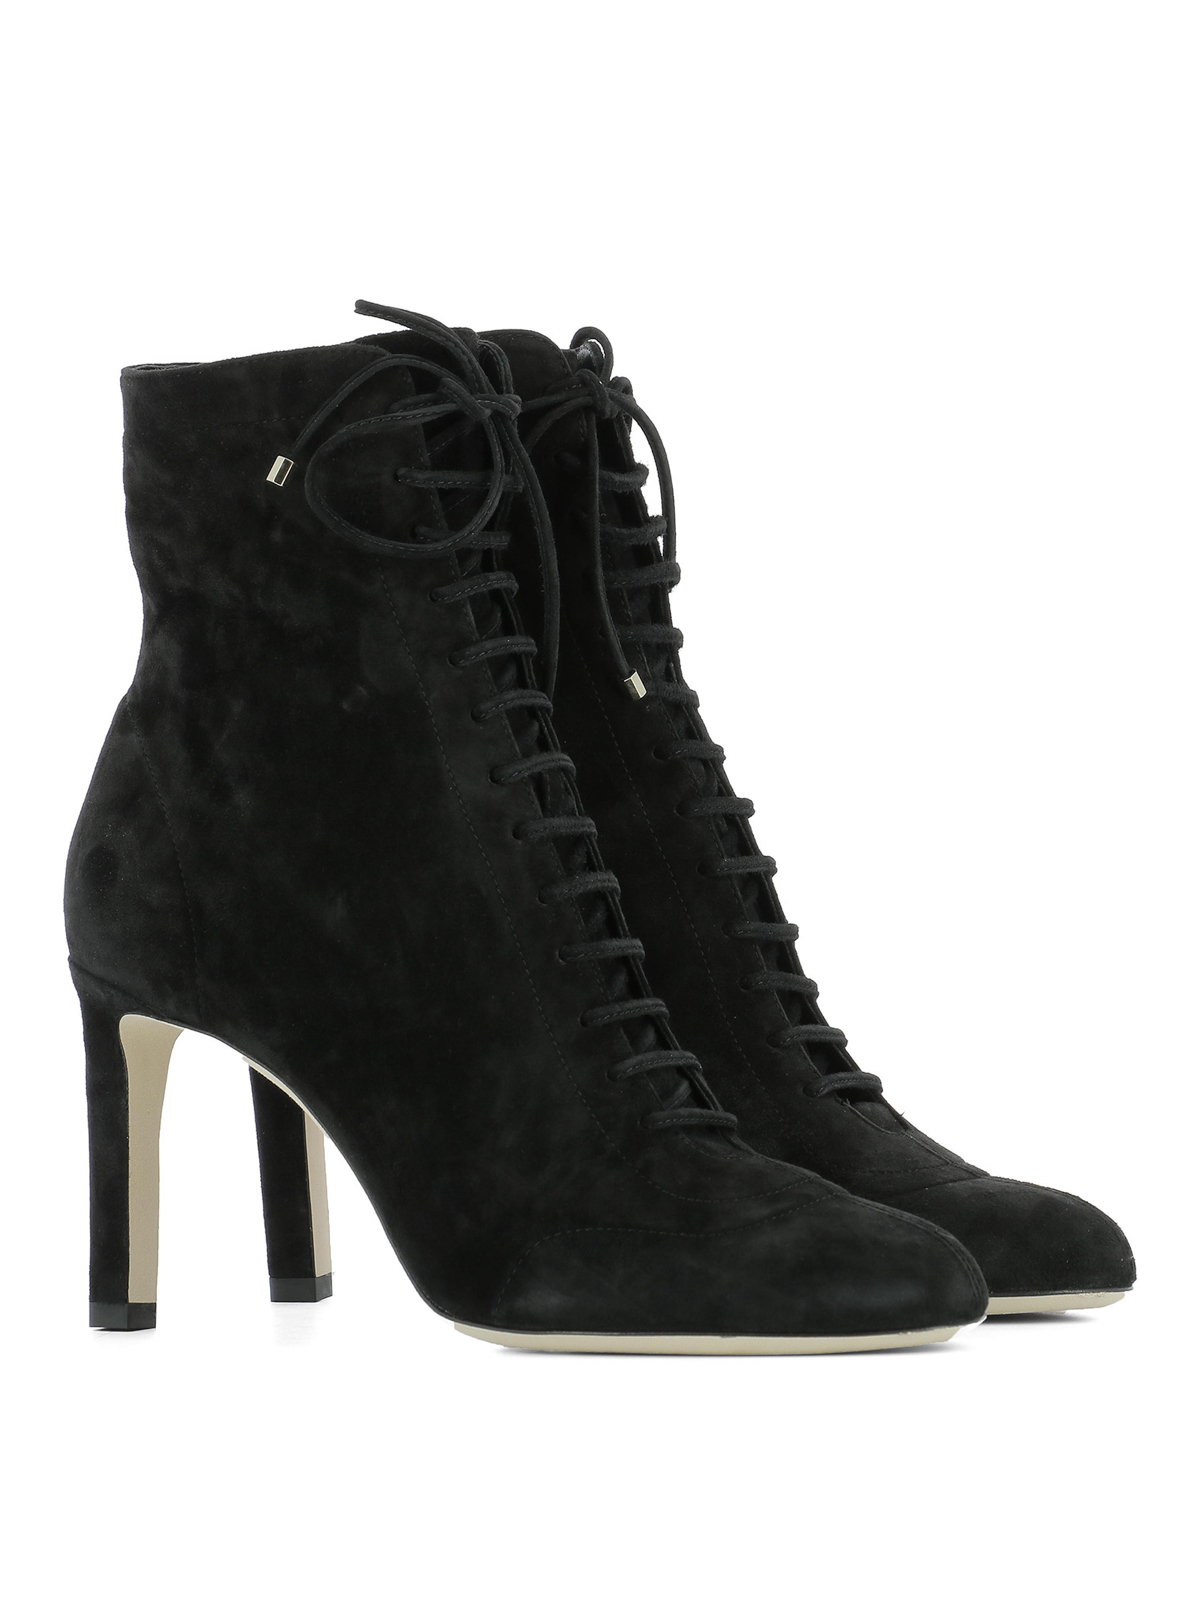 Daize Lace Up Suede Booties By Jimmy Choo Ankle Boots